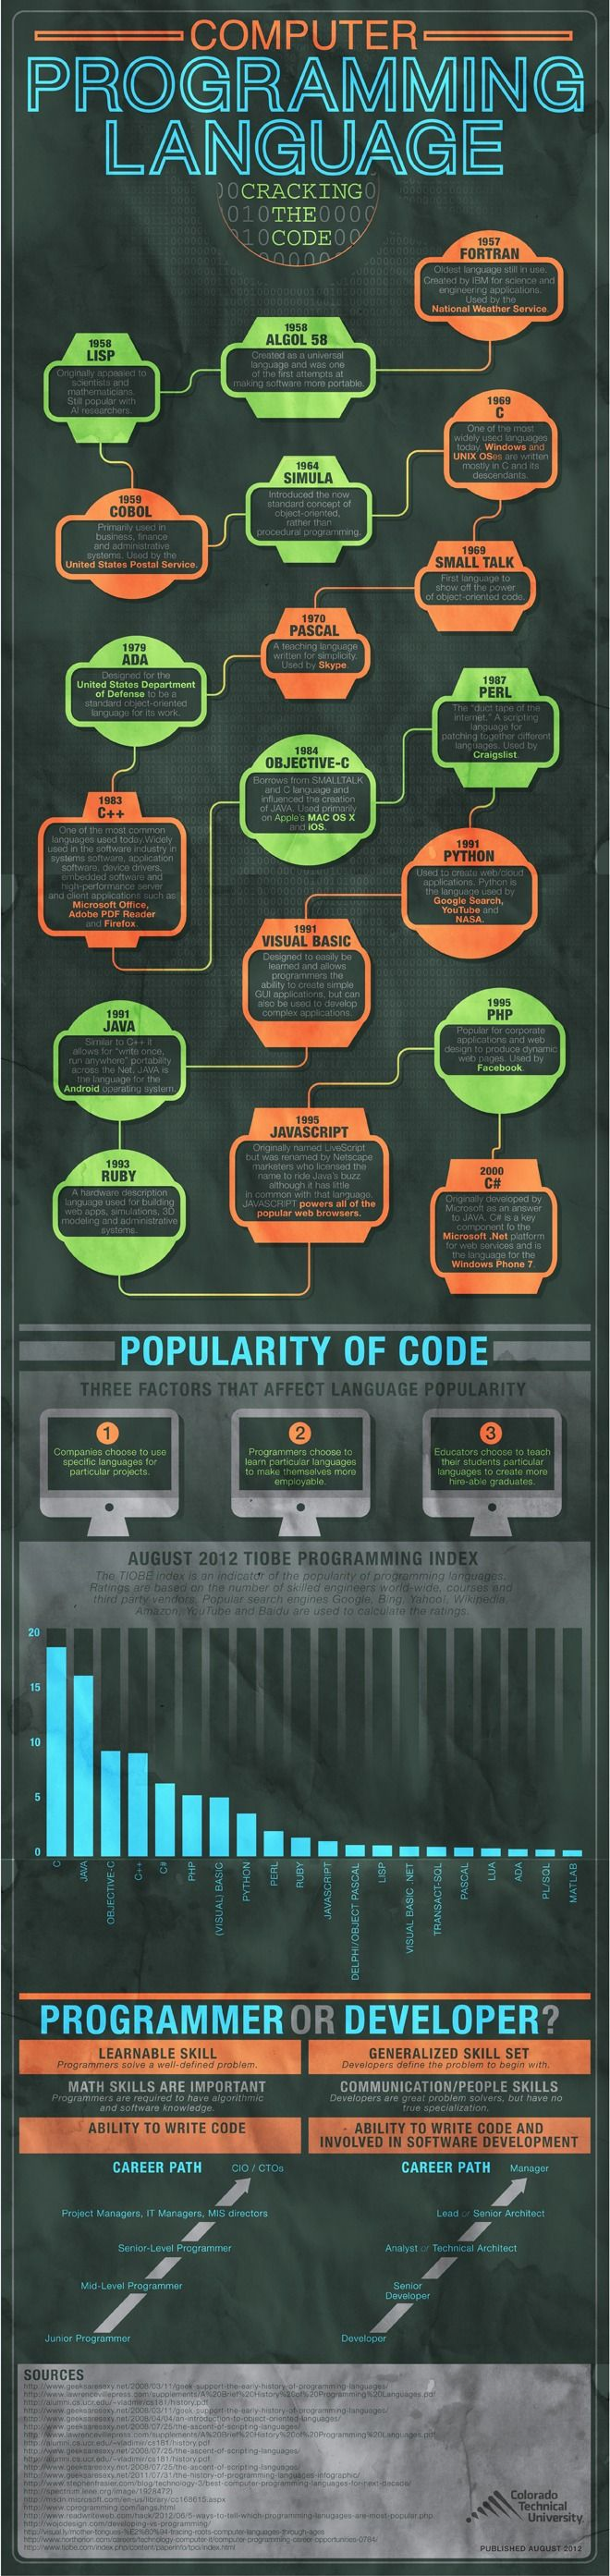 Infographic: Computer Programming Languages